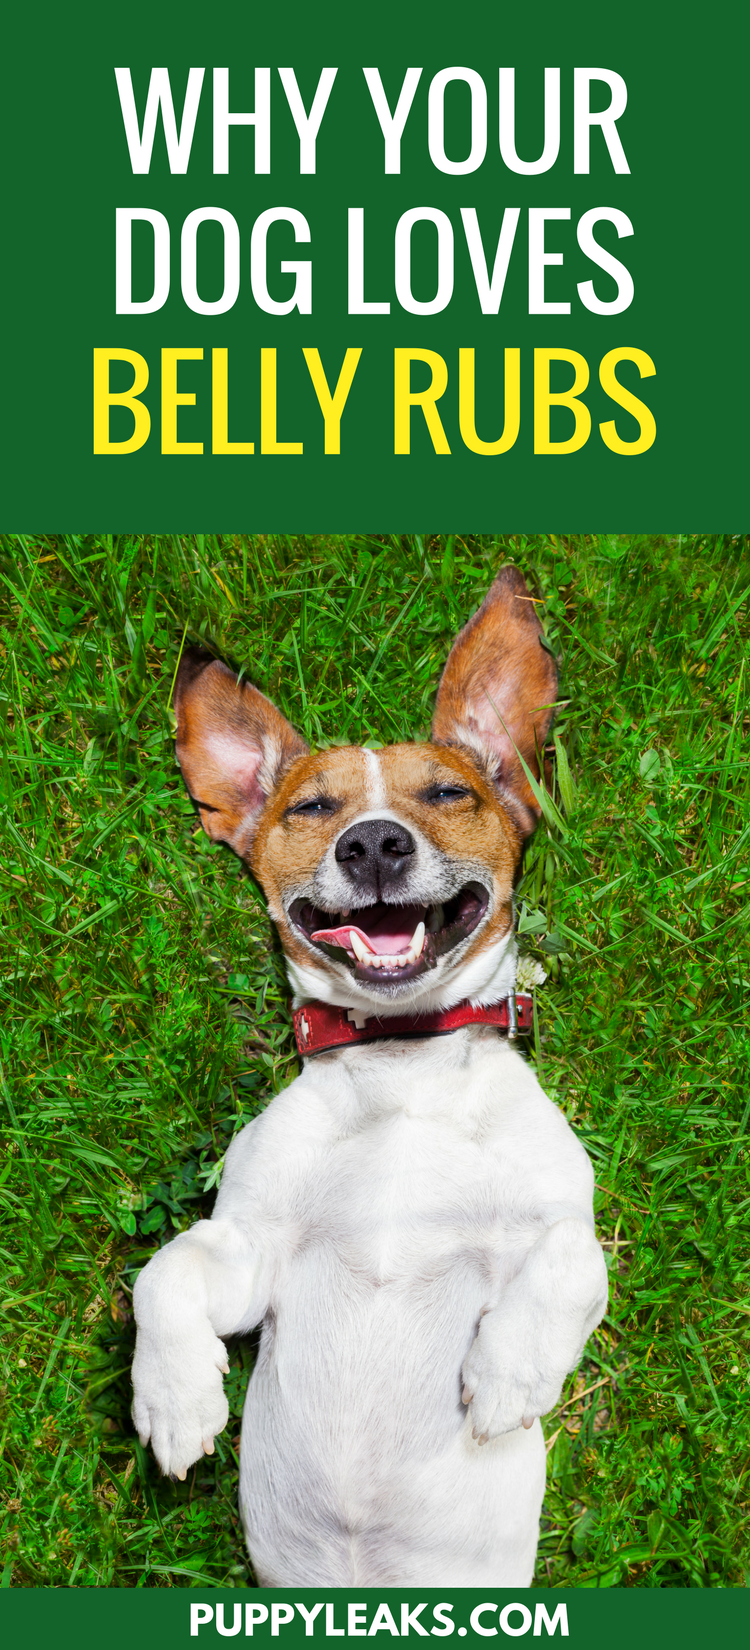 Why Do Dogs Love Belly Rubs?